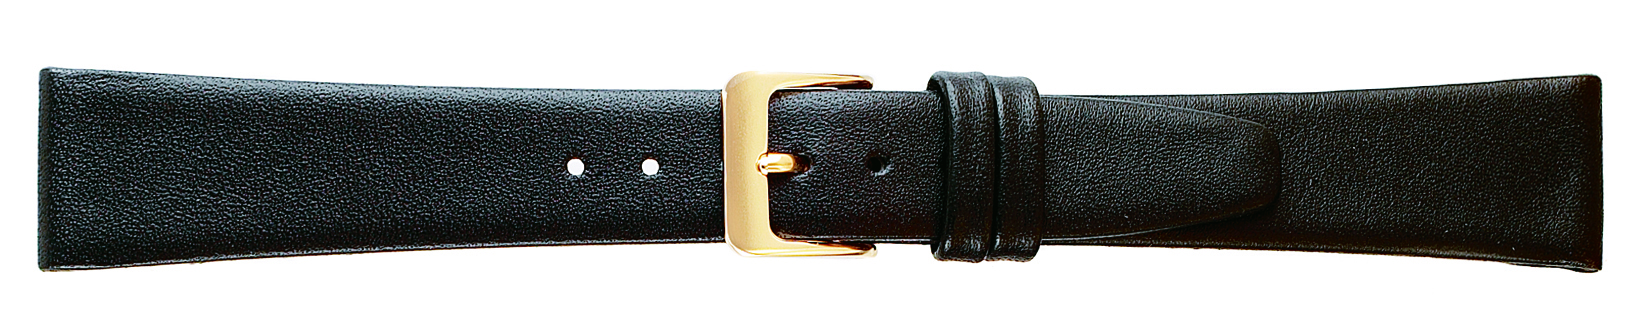 12MM Leather Band Black Smooth Calf Long-0